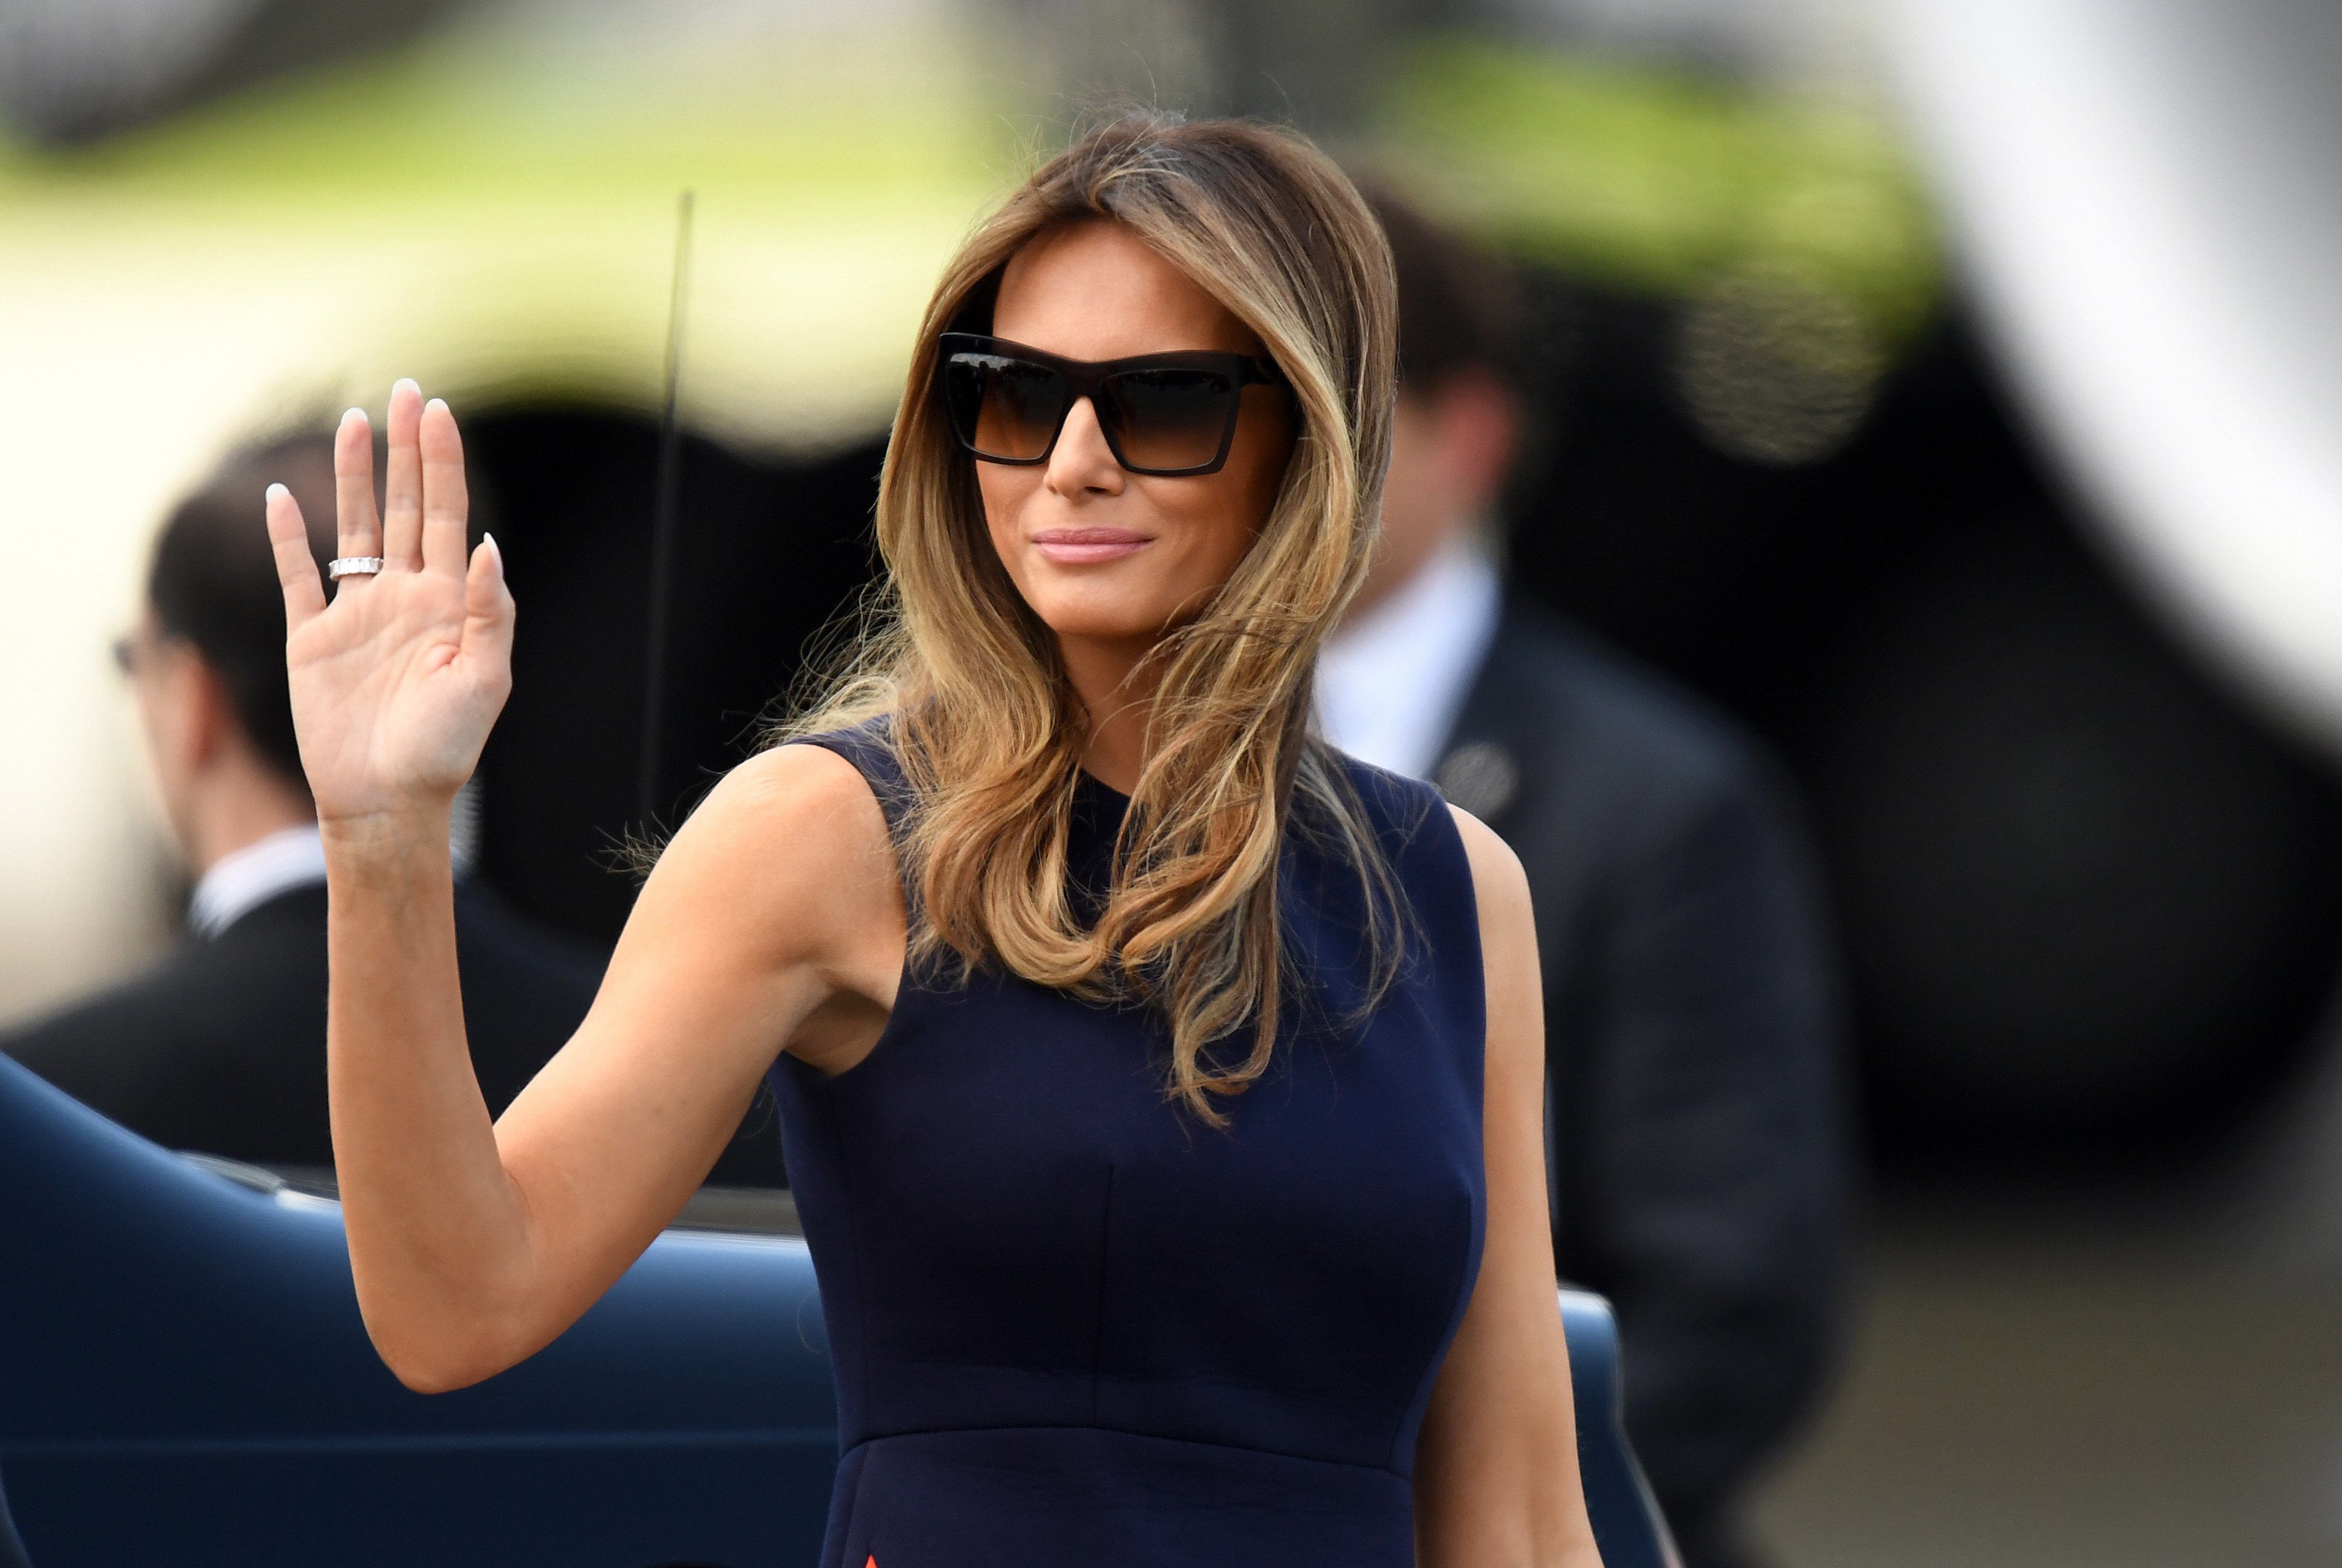 First Lady Looks In Sunglasses